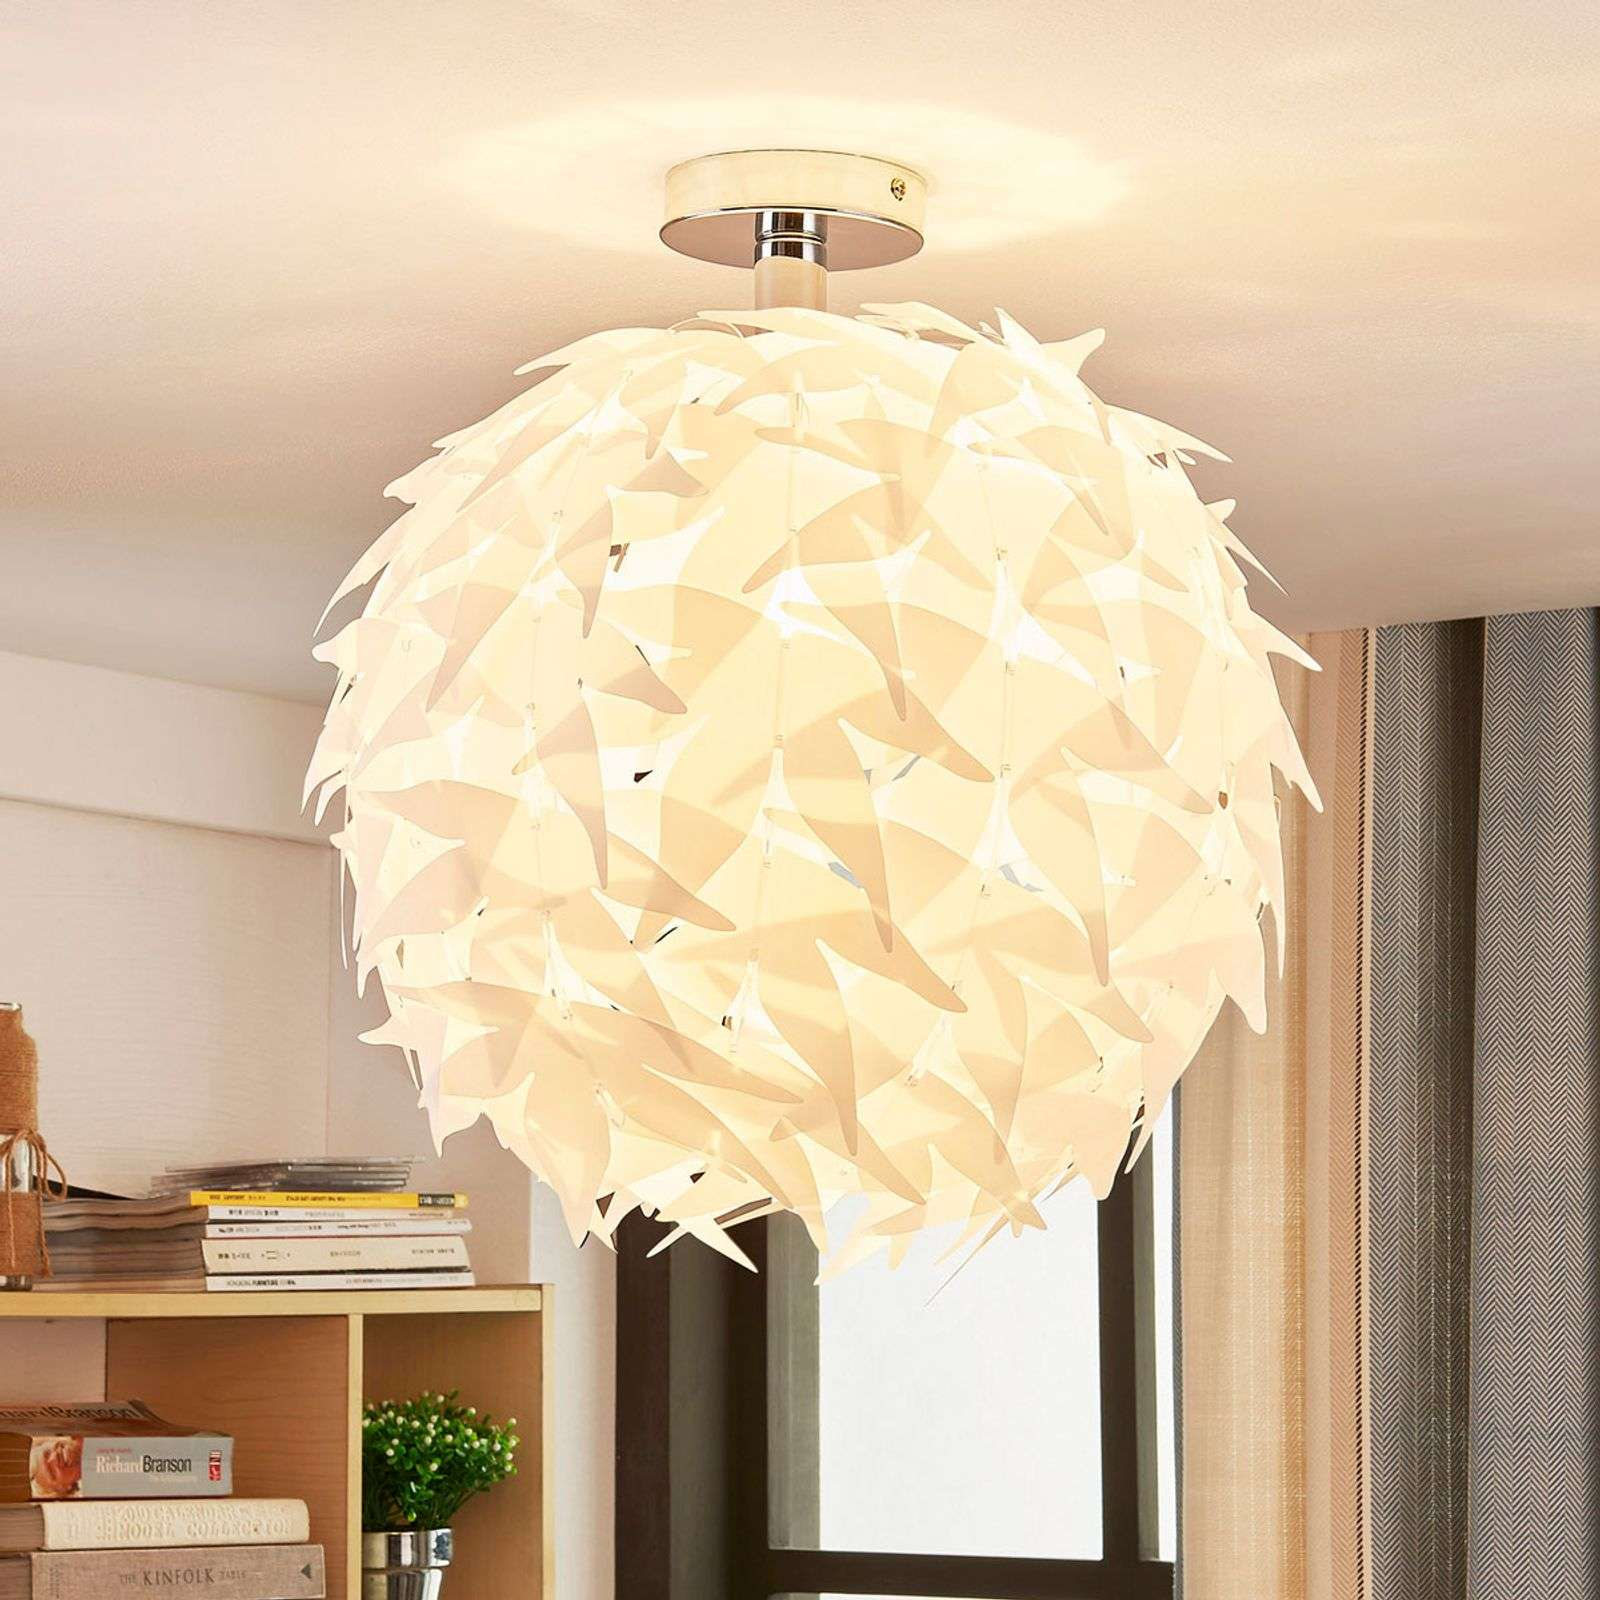 Suspension blanche Corin au look tendance